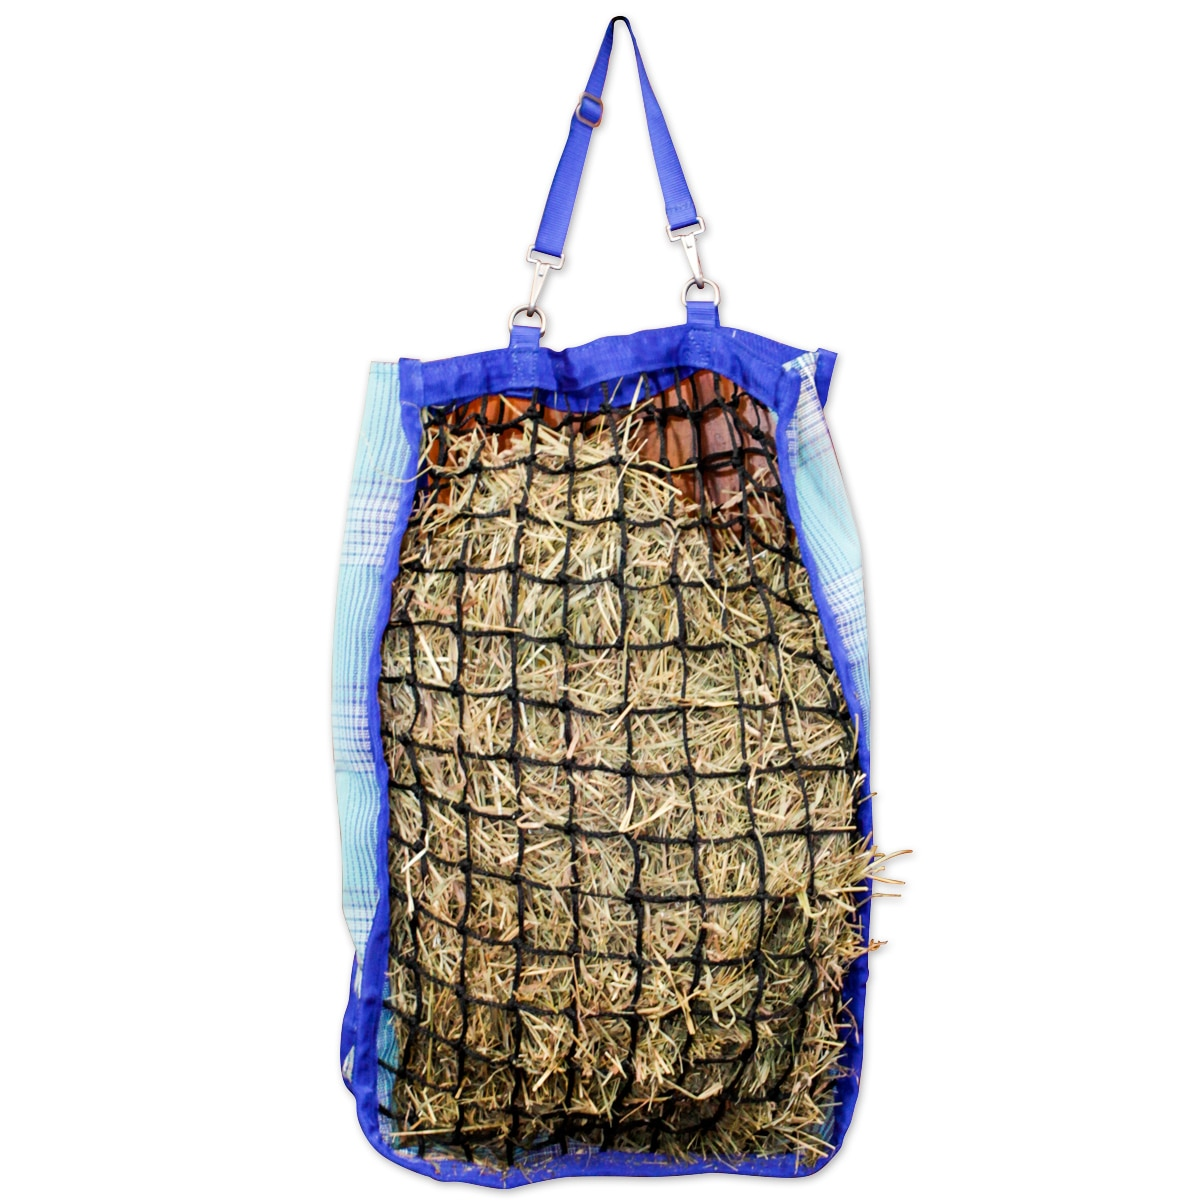 d2a8d35f95e Kensington Slow Feed Hay Bag Made Exclusively For SmartPak